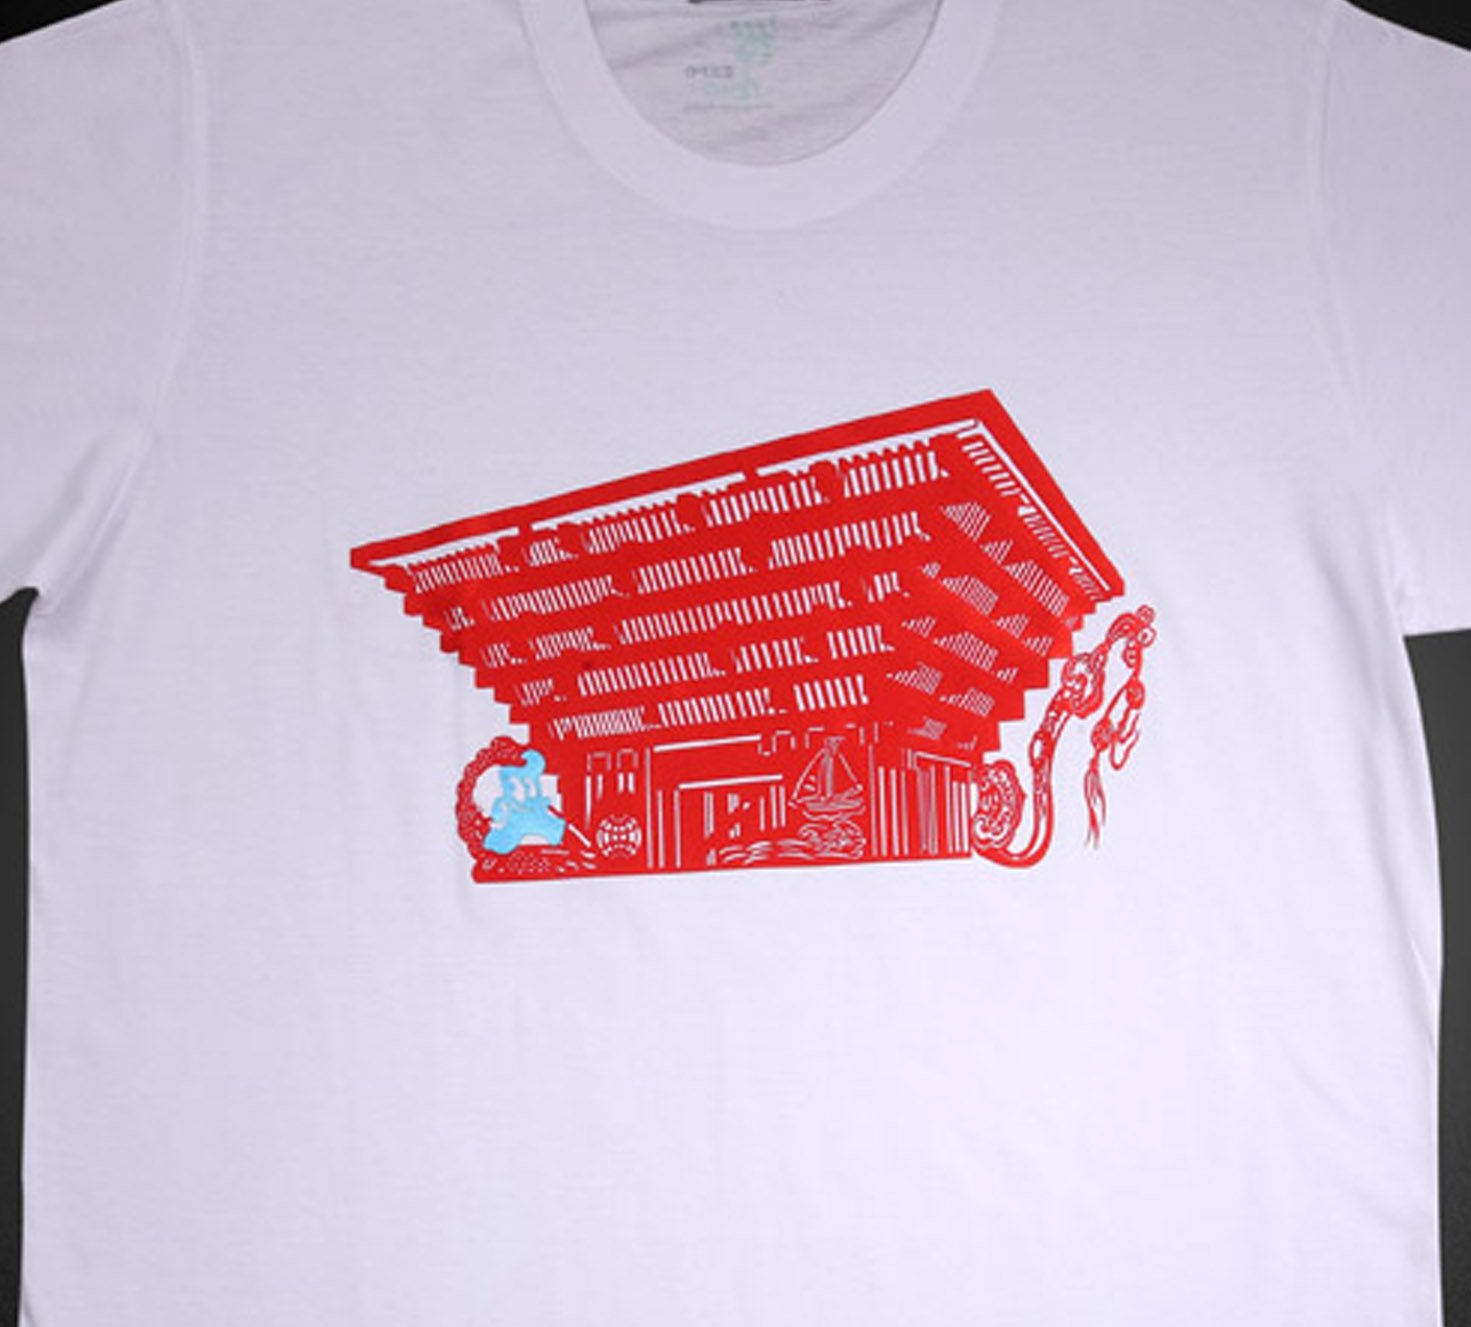 T Shirts Online 2010 China World Expo Landmark T Shirts   (Men's Large)